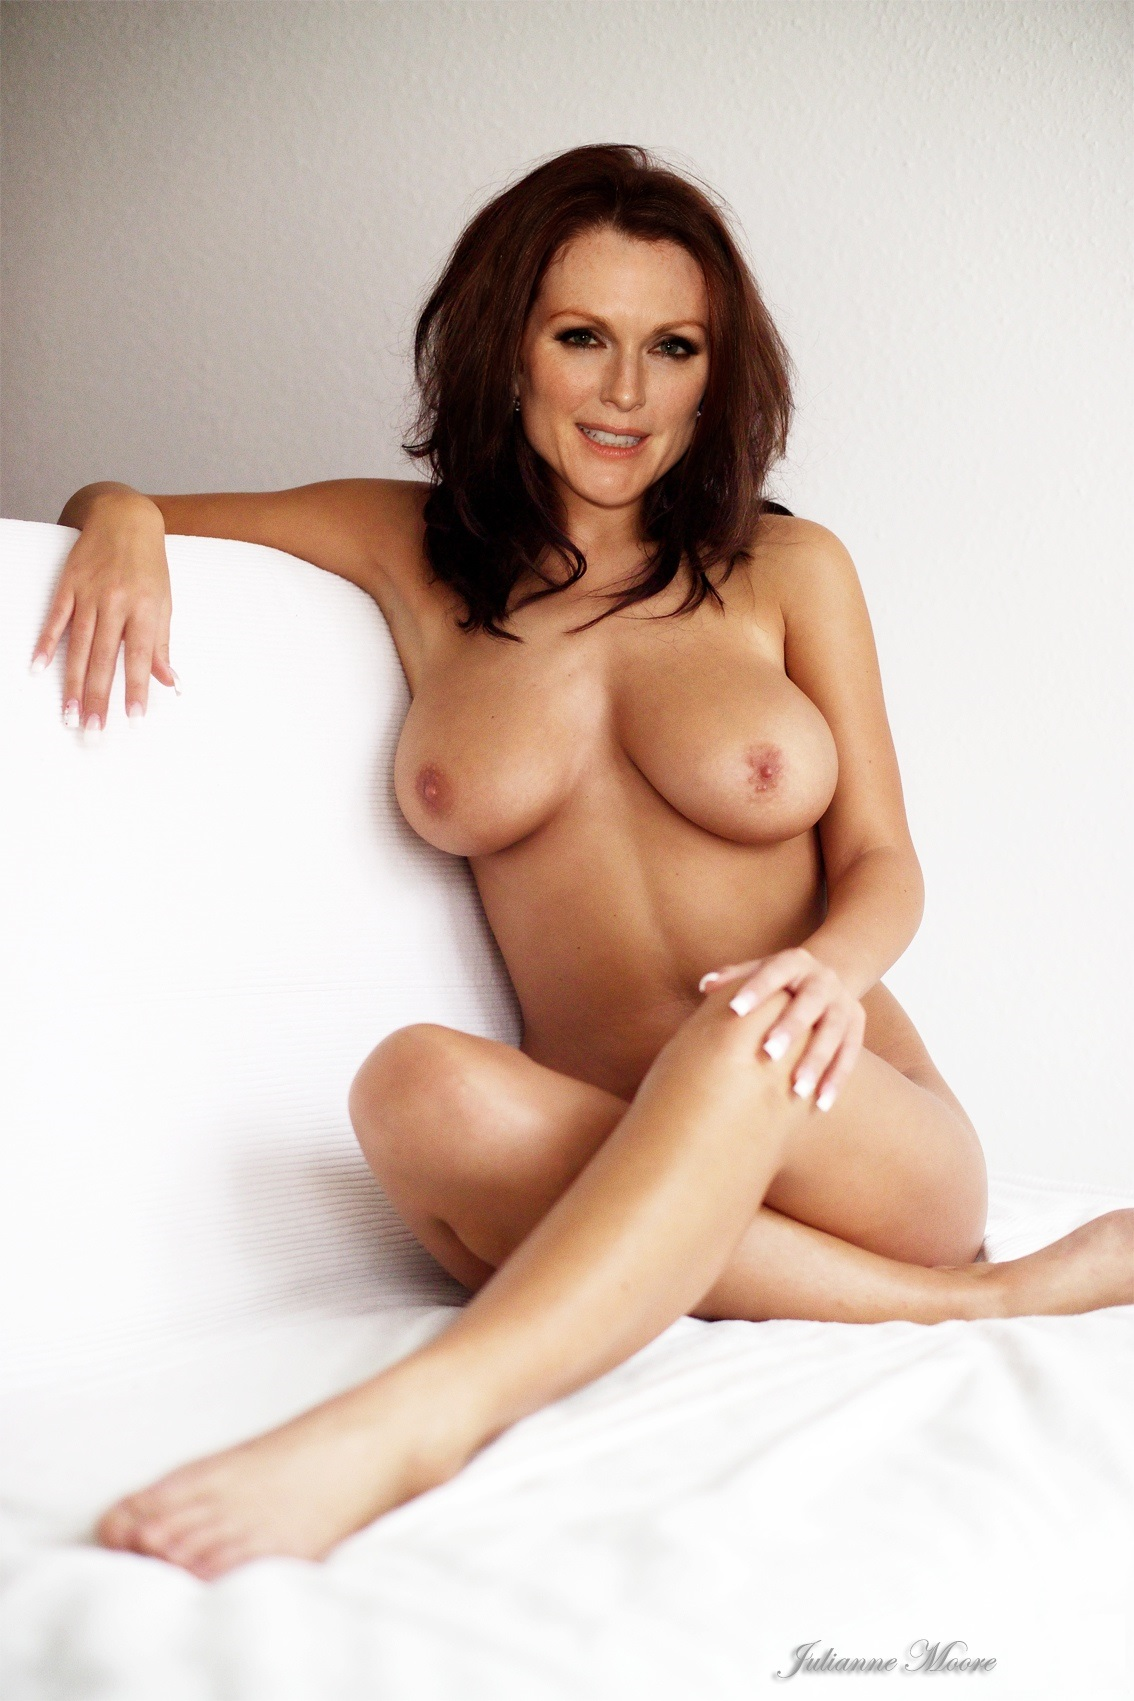 Naked julianne naked — photo 5